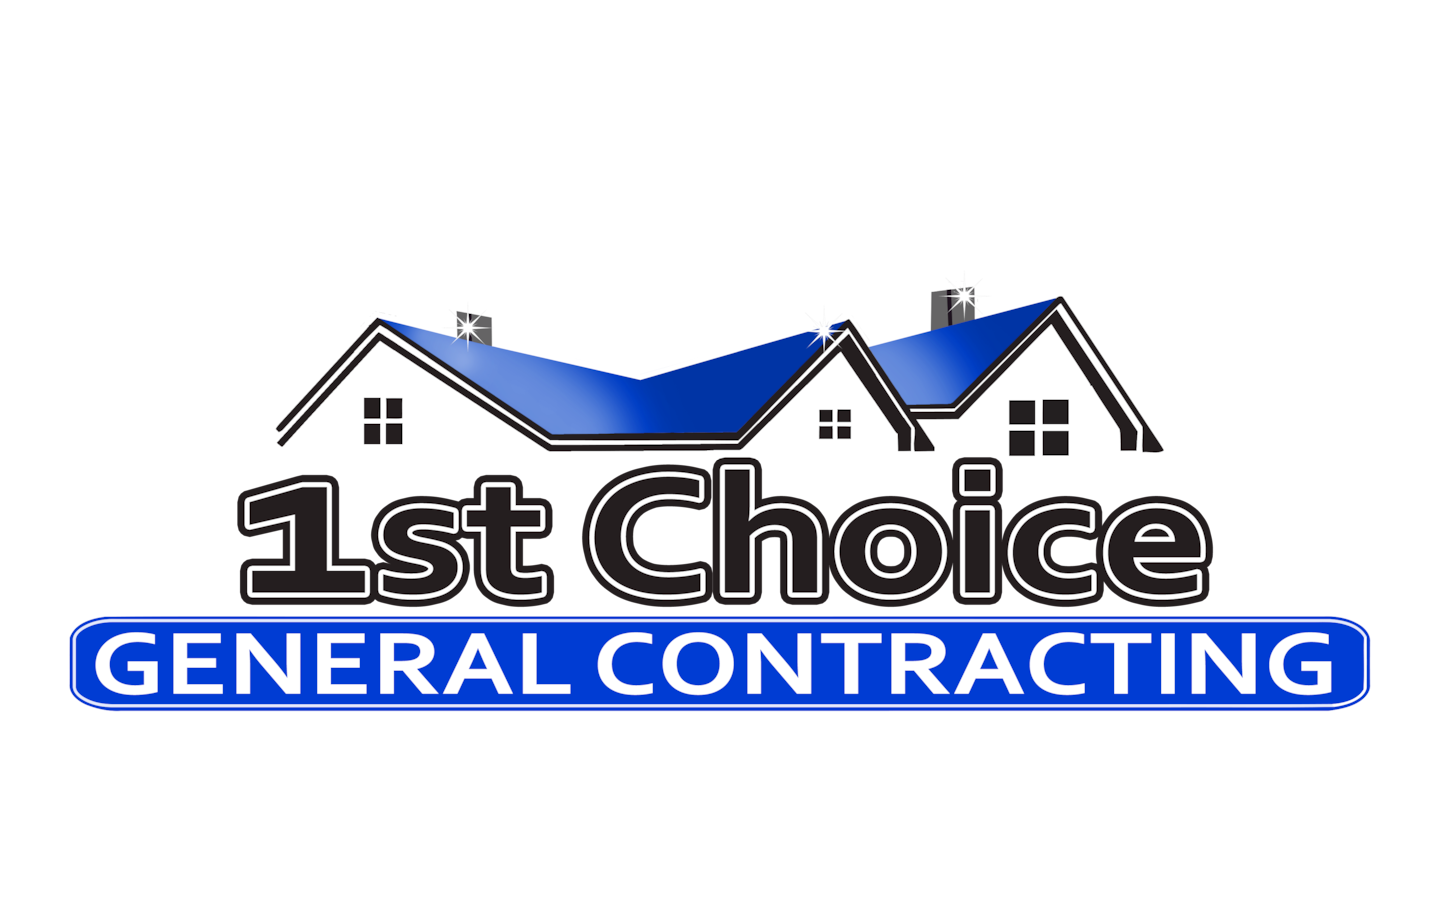 1st Choice General Contracting